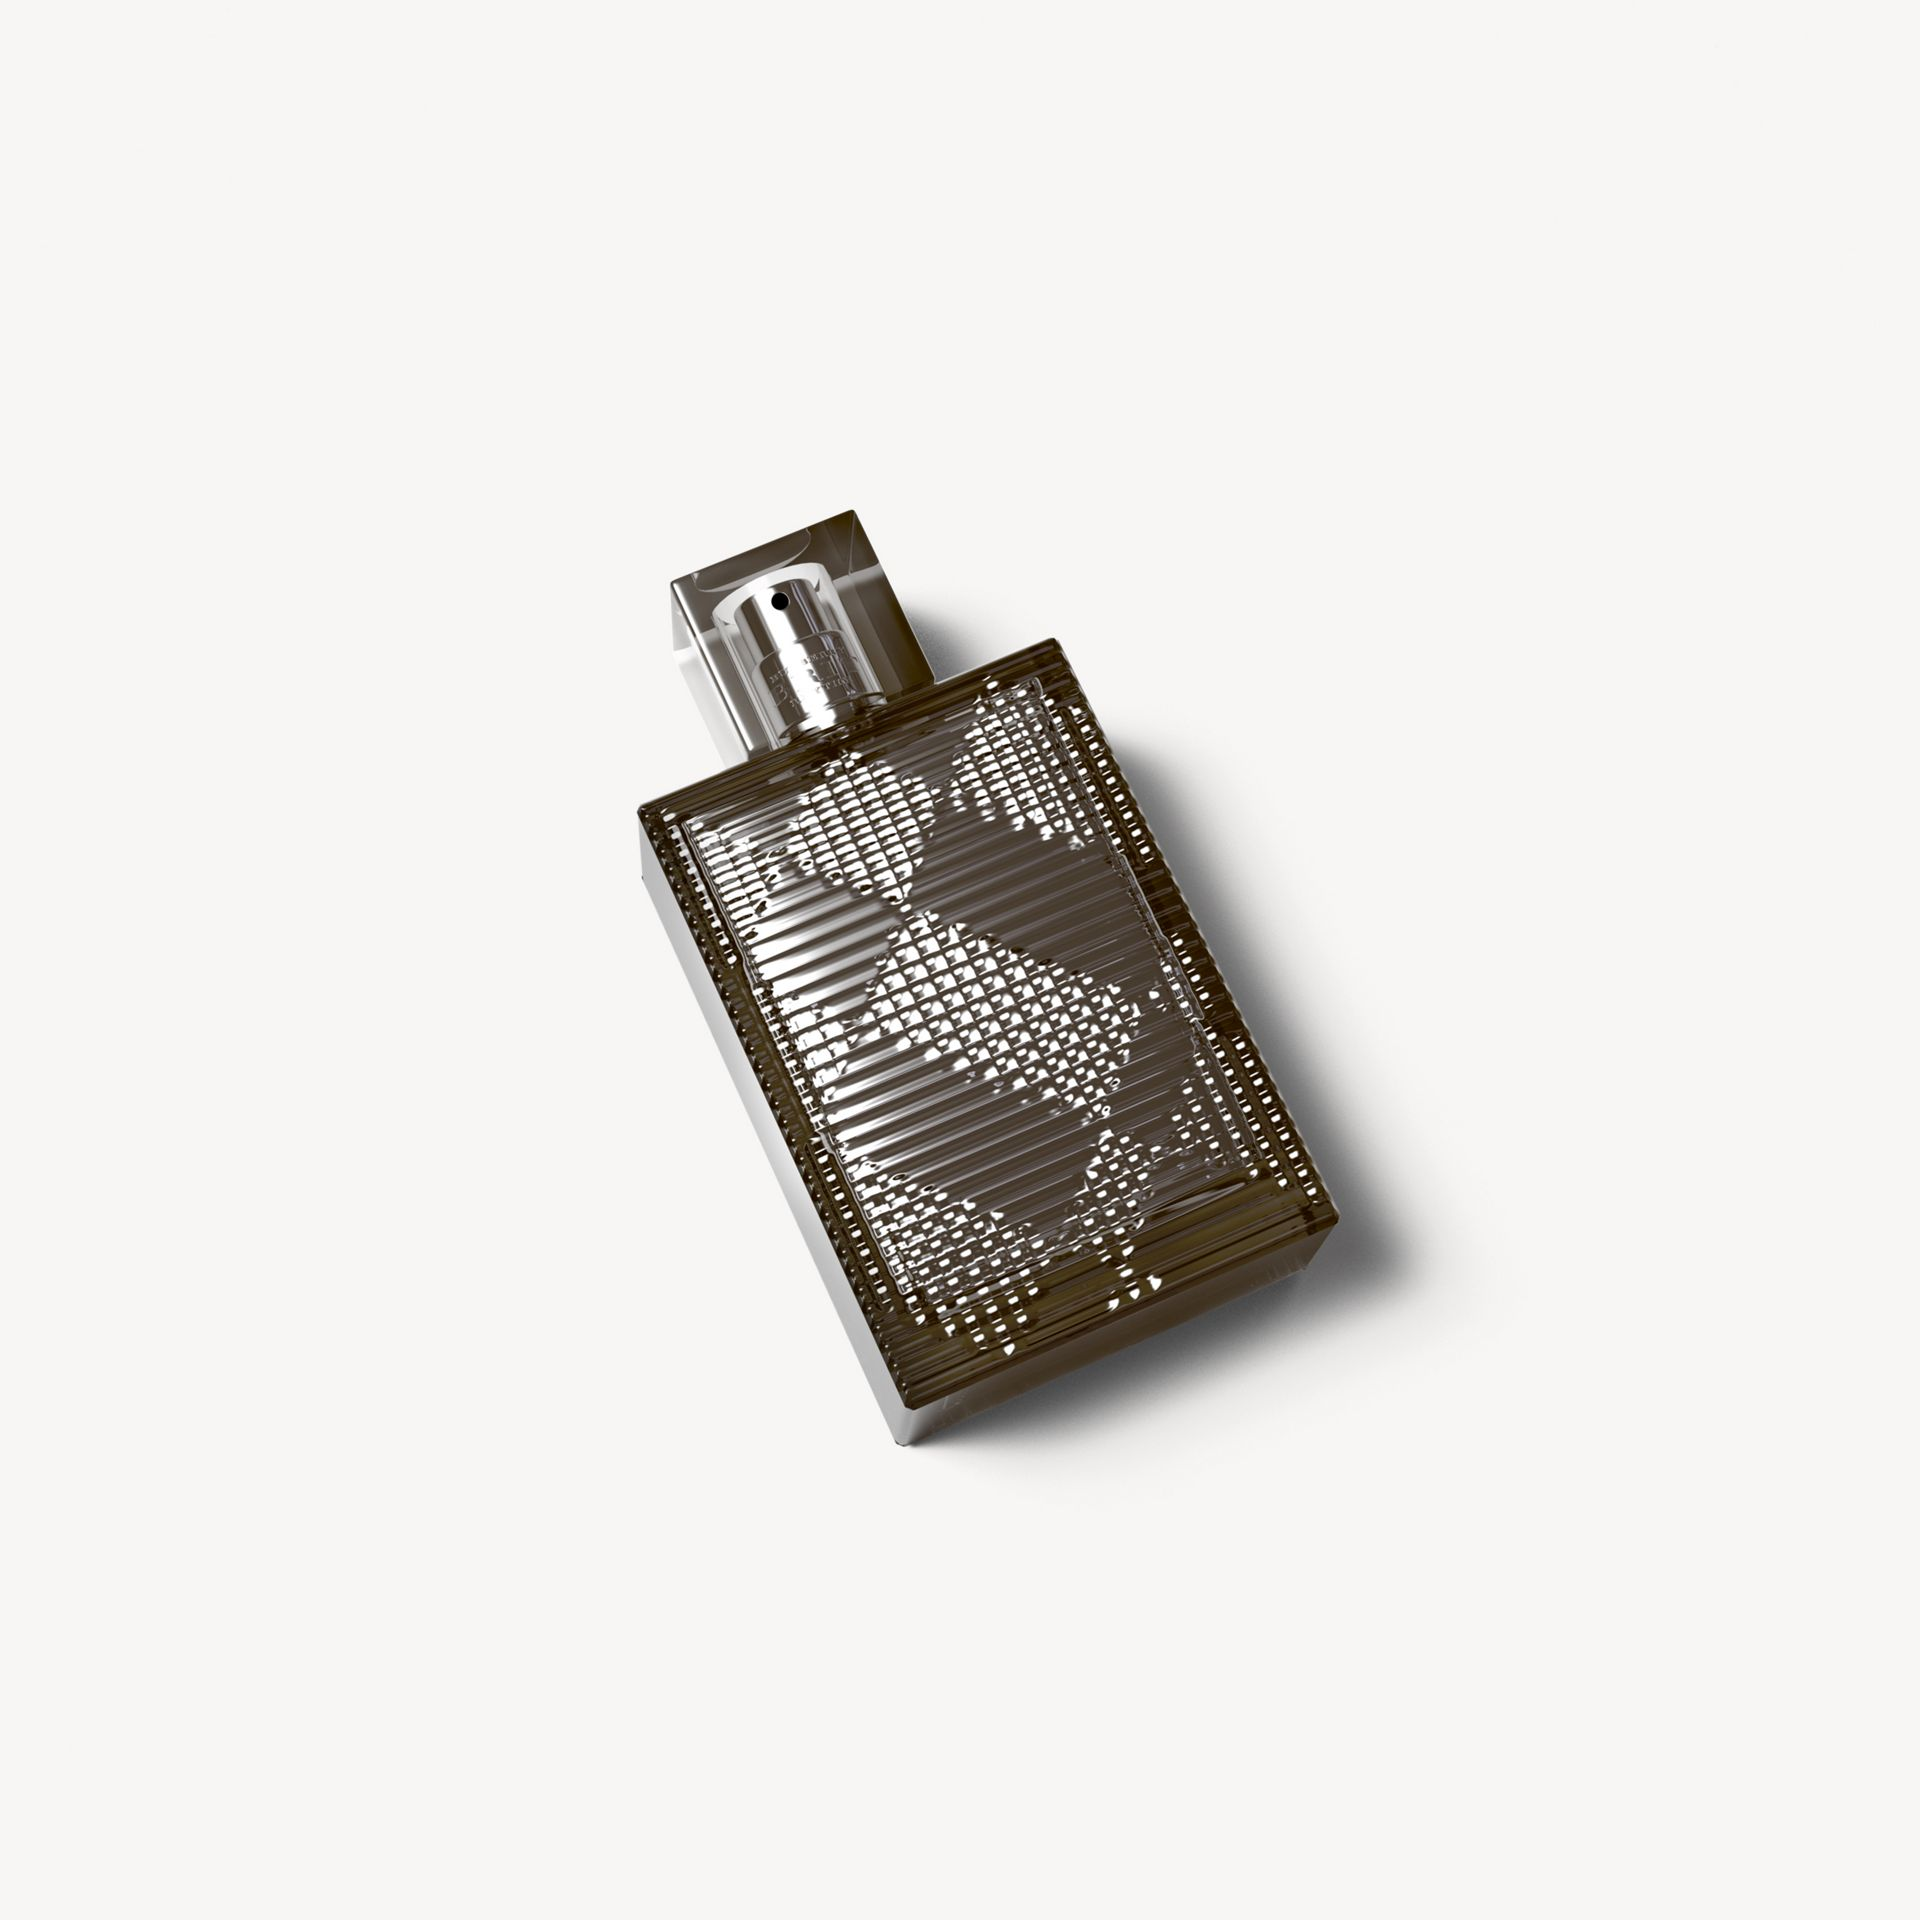 Burberry Brit Rhythm Intense Eau de Toilette 50 ml - immagine della galleria 1